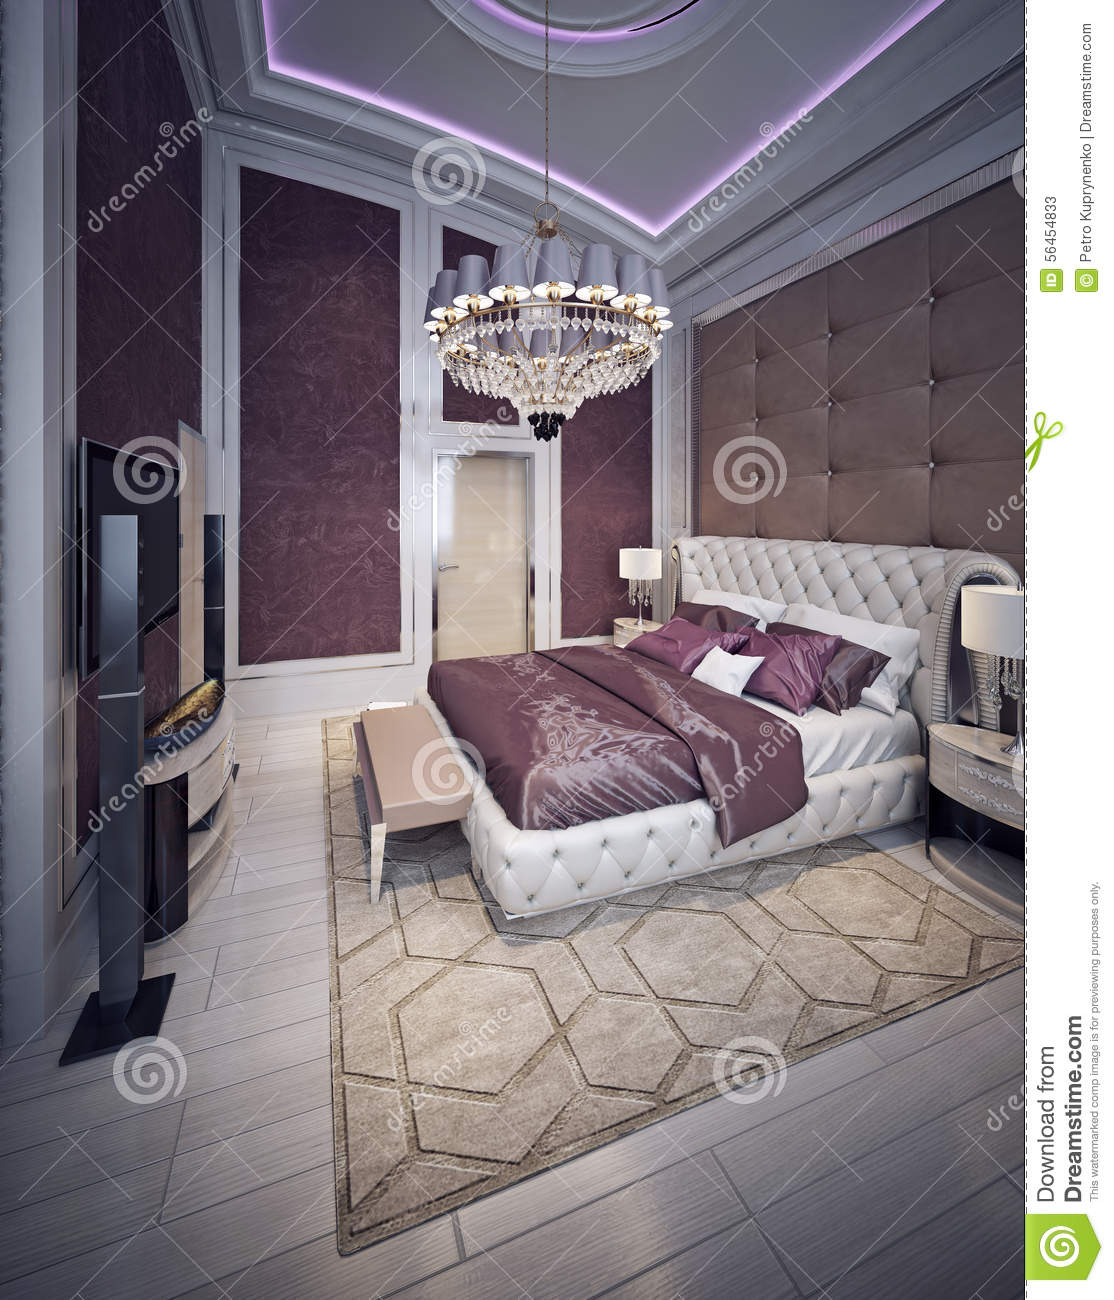 Expensive Bedroom Baroque Style Stock Photo - Image: 56454833